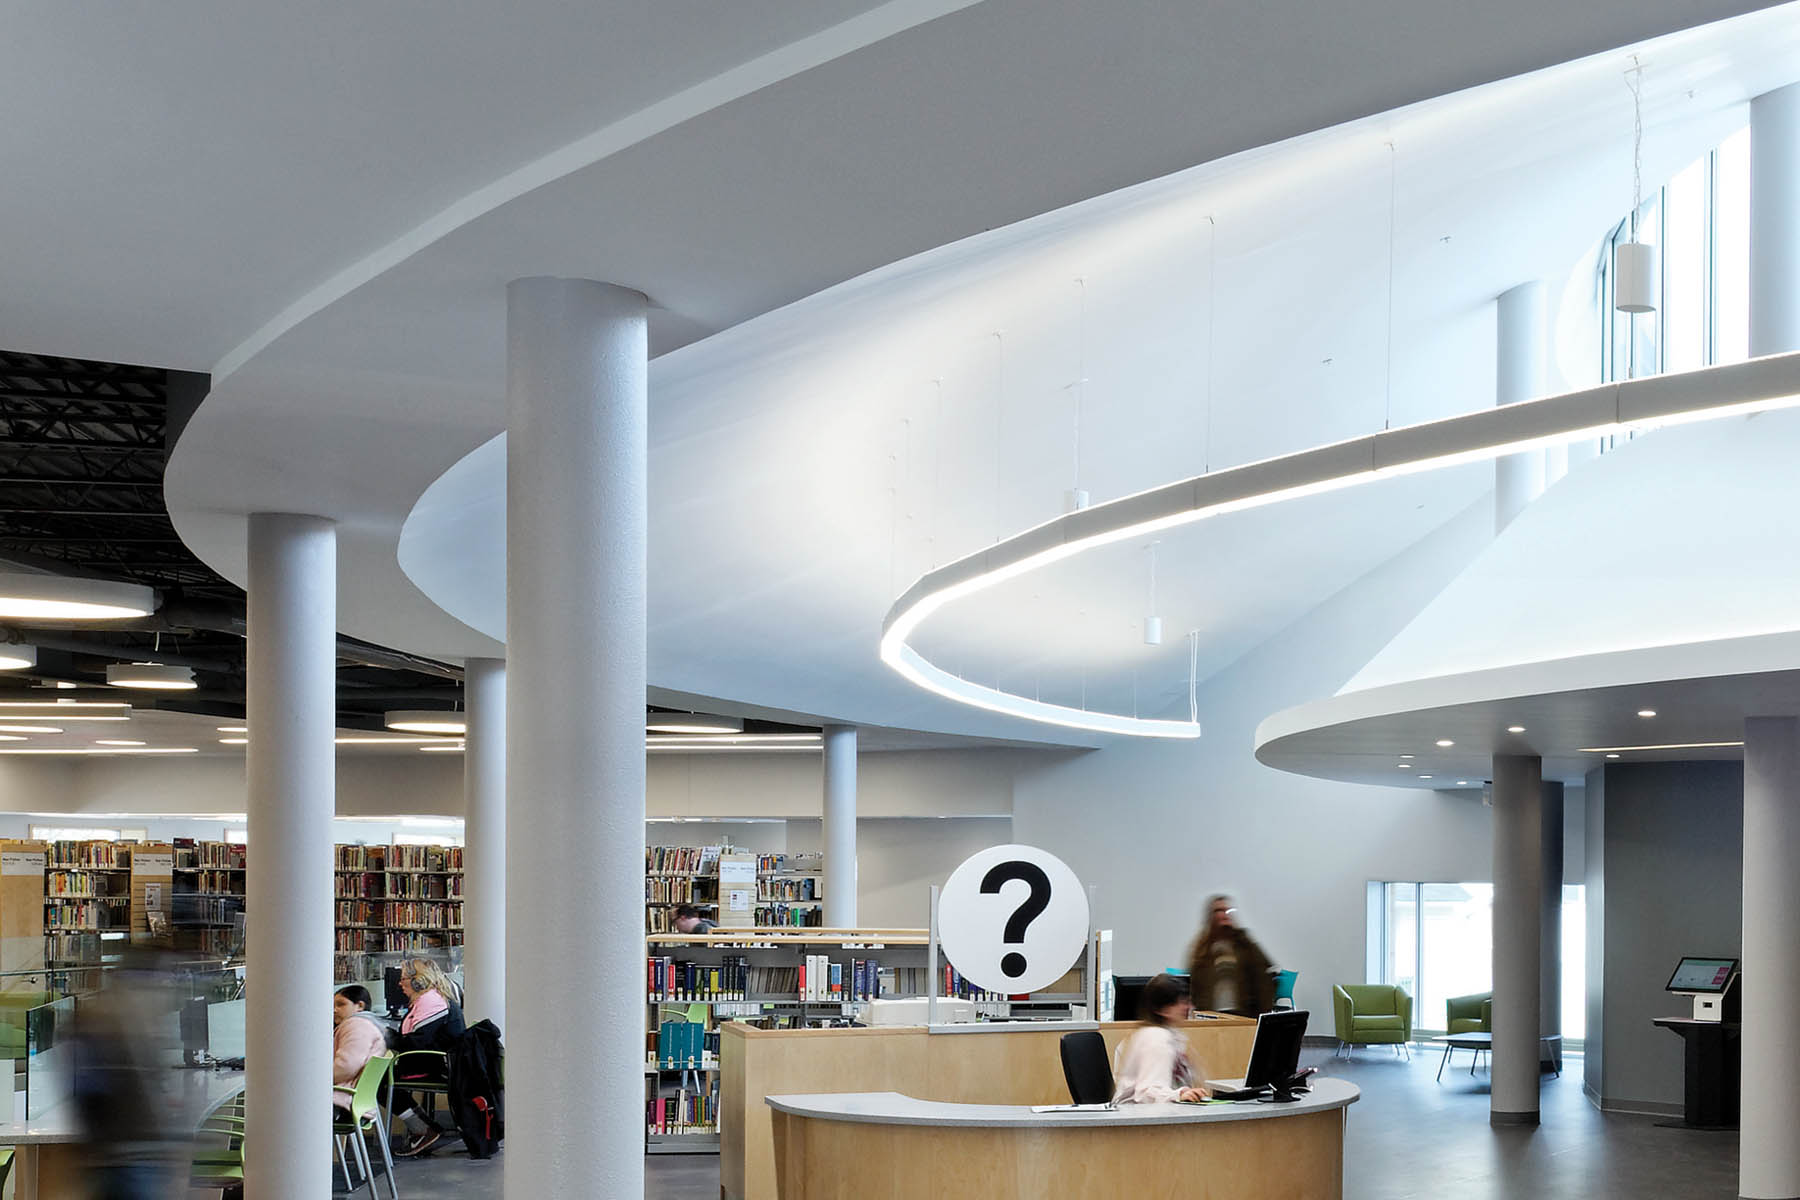 Information desk with large question mark signage, white columns, bookshelves and tiered ceiling with clerestory windows